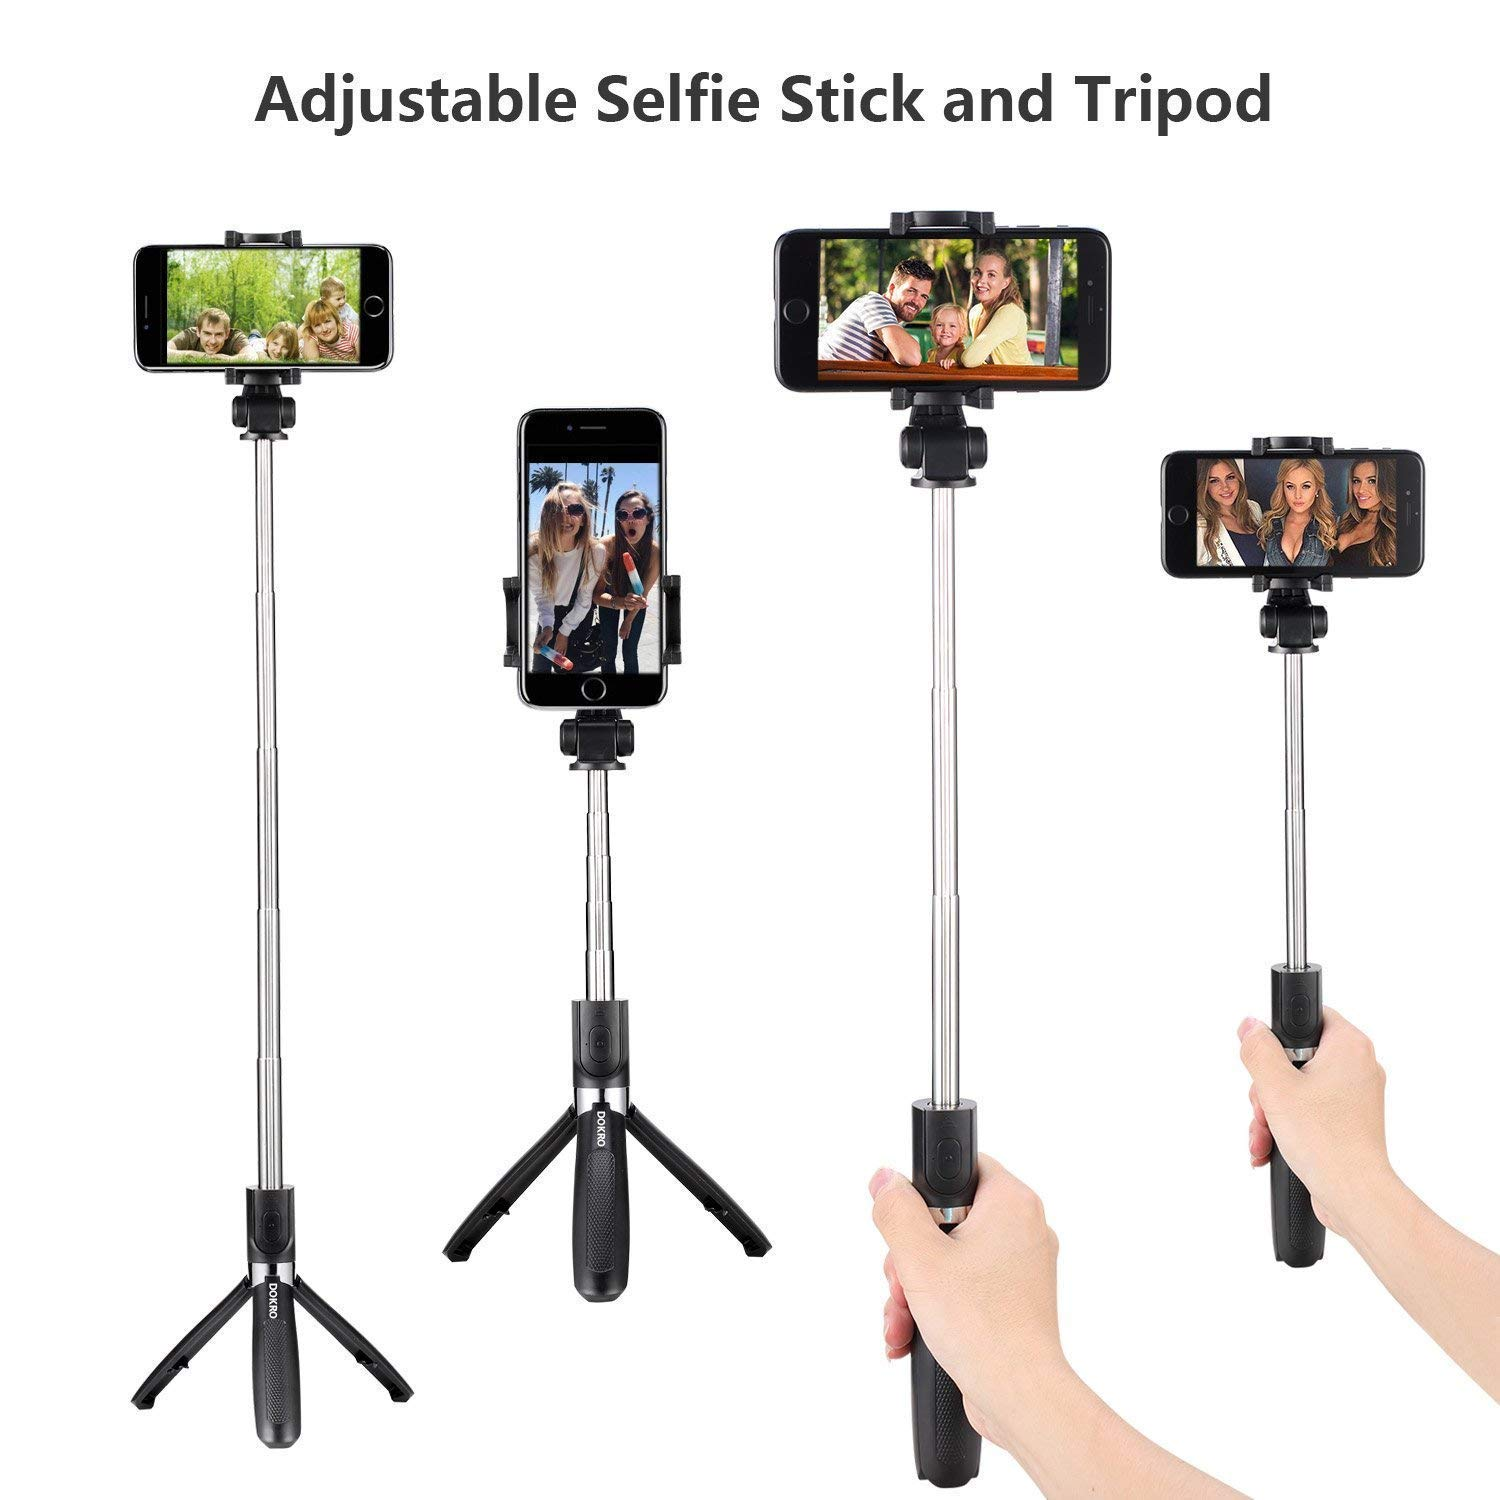 Flexible Tripod Mount with Wireless Remote Cell Phone Sweego Tripod Stand Holder for iPhone Camera Phone Tripod